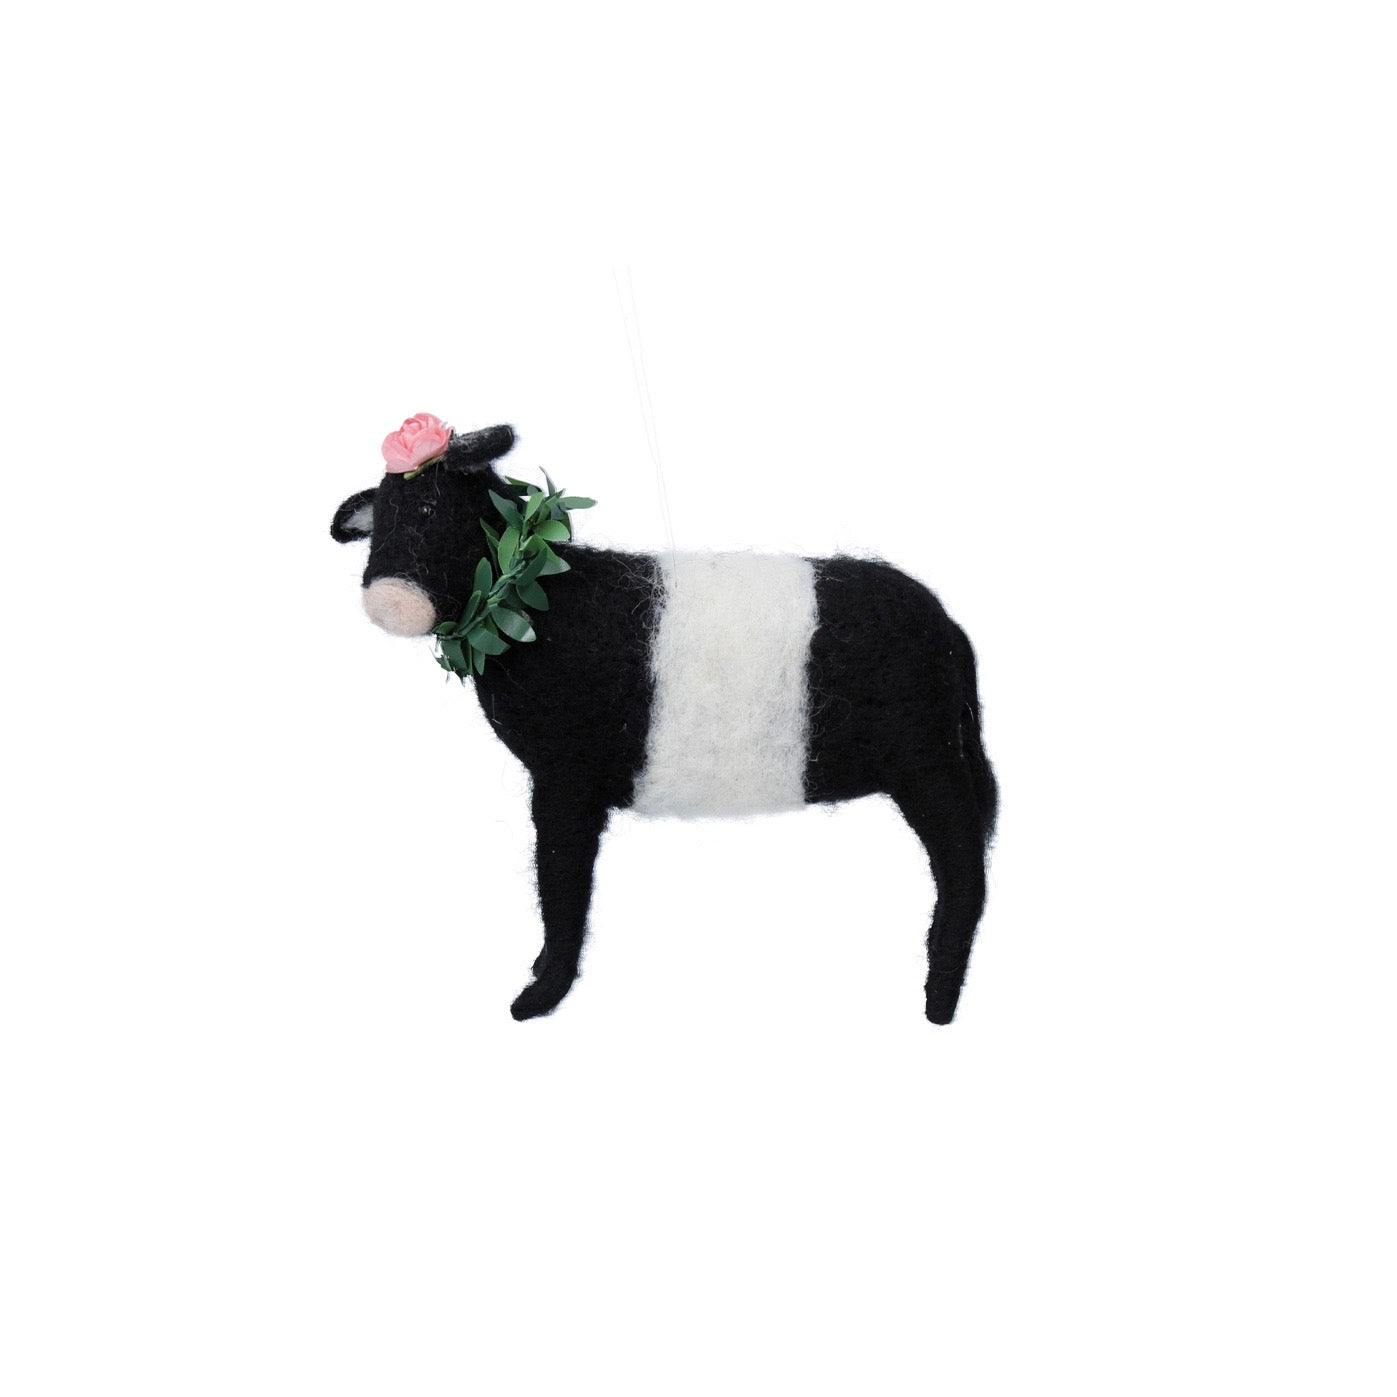 Black and White Cow With Flowers Felt Ornament | Putti Decorations